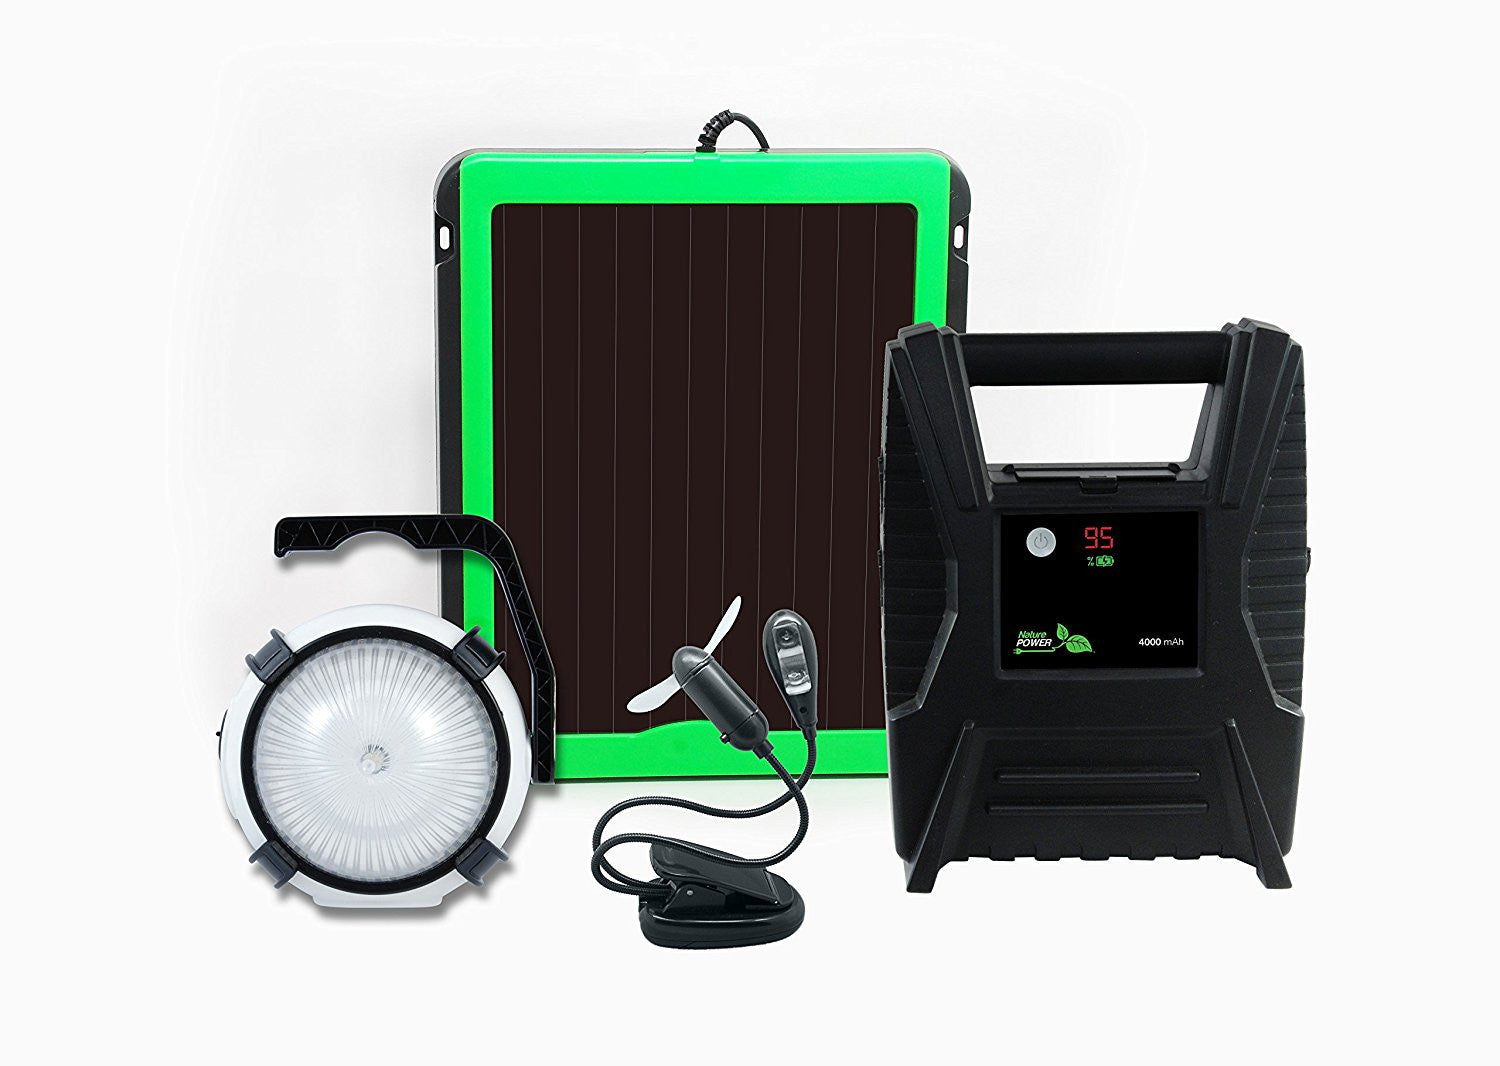 Nature Power Emergency Solar Power System Accessories The Cabin Supply Depot- The Cabin Depot Off-Grid Off Grid Living Solutions Cabin Cottage Camp Solar Panel Water Heater Hunting Fishing Boats RVs Outdoors